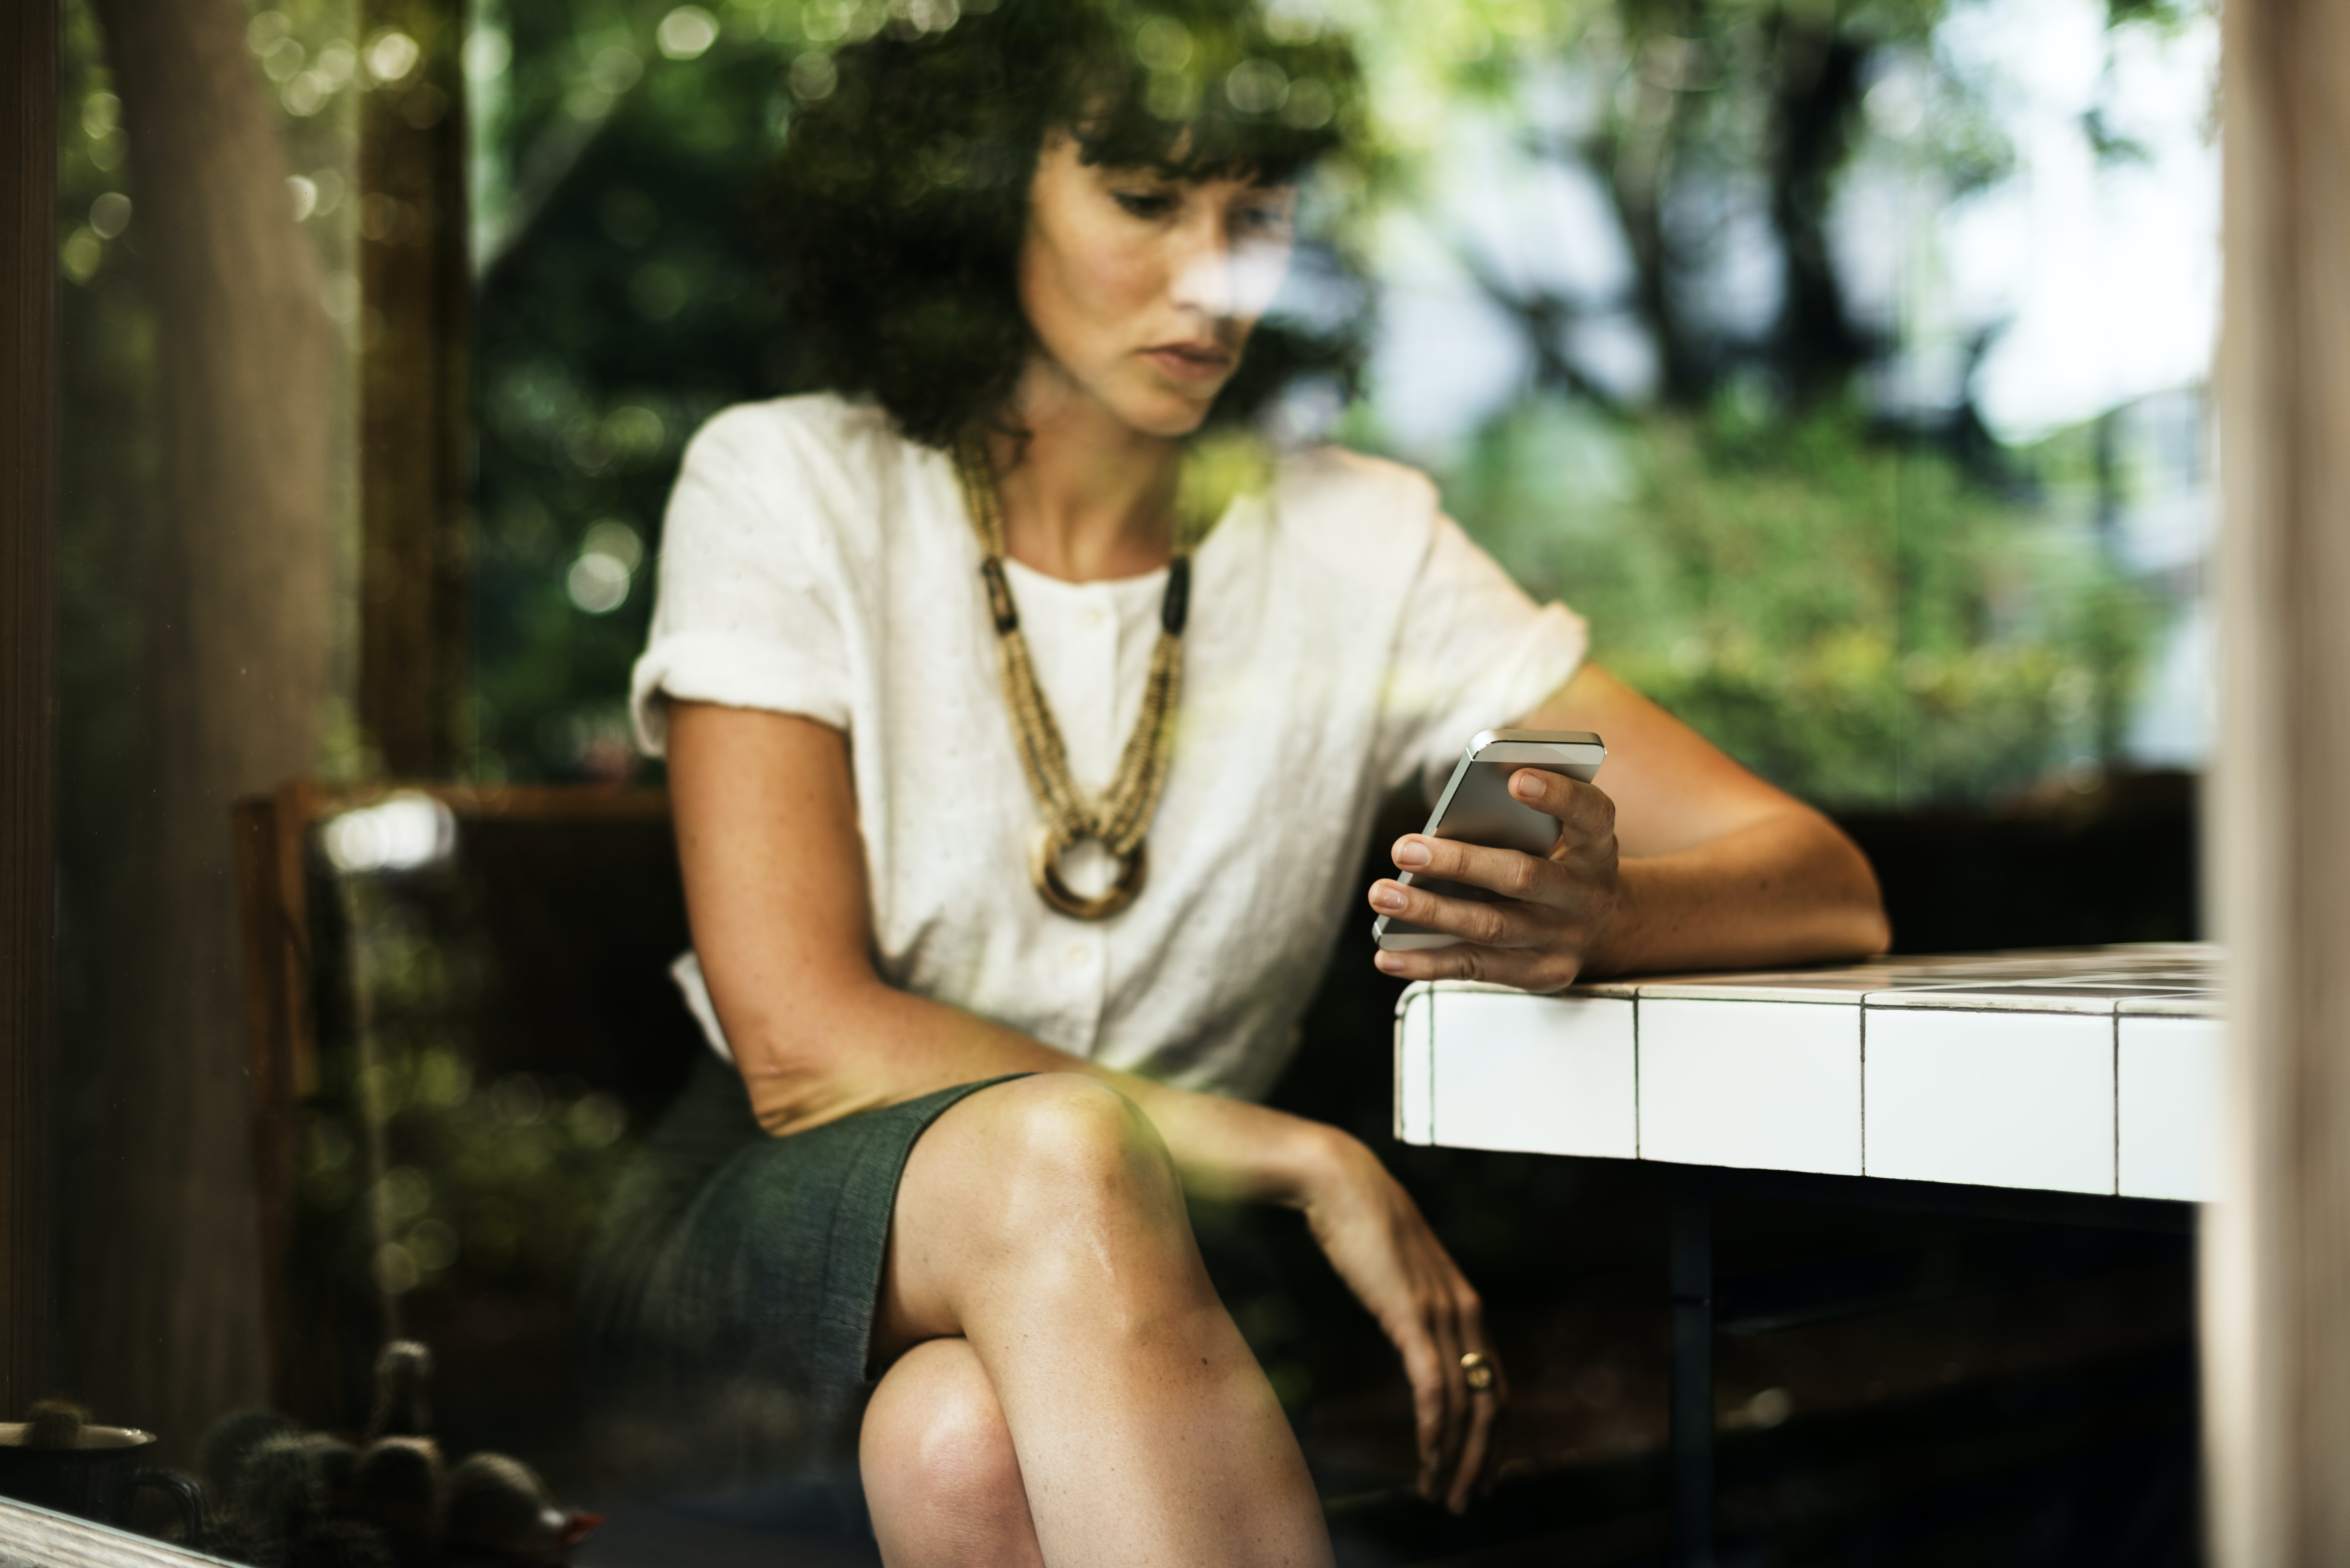 woman sitting while using her smartphone